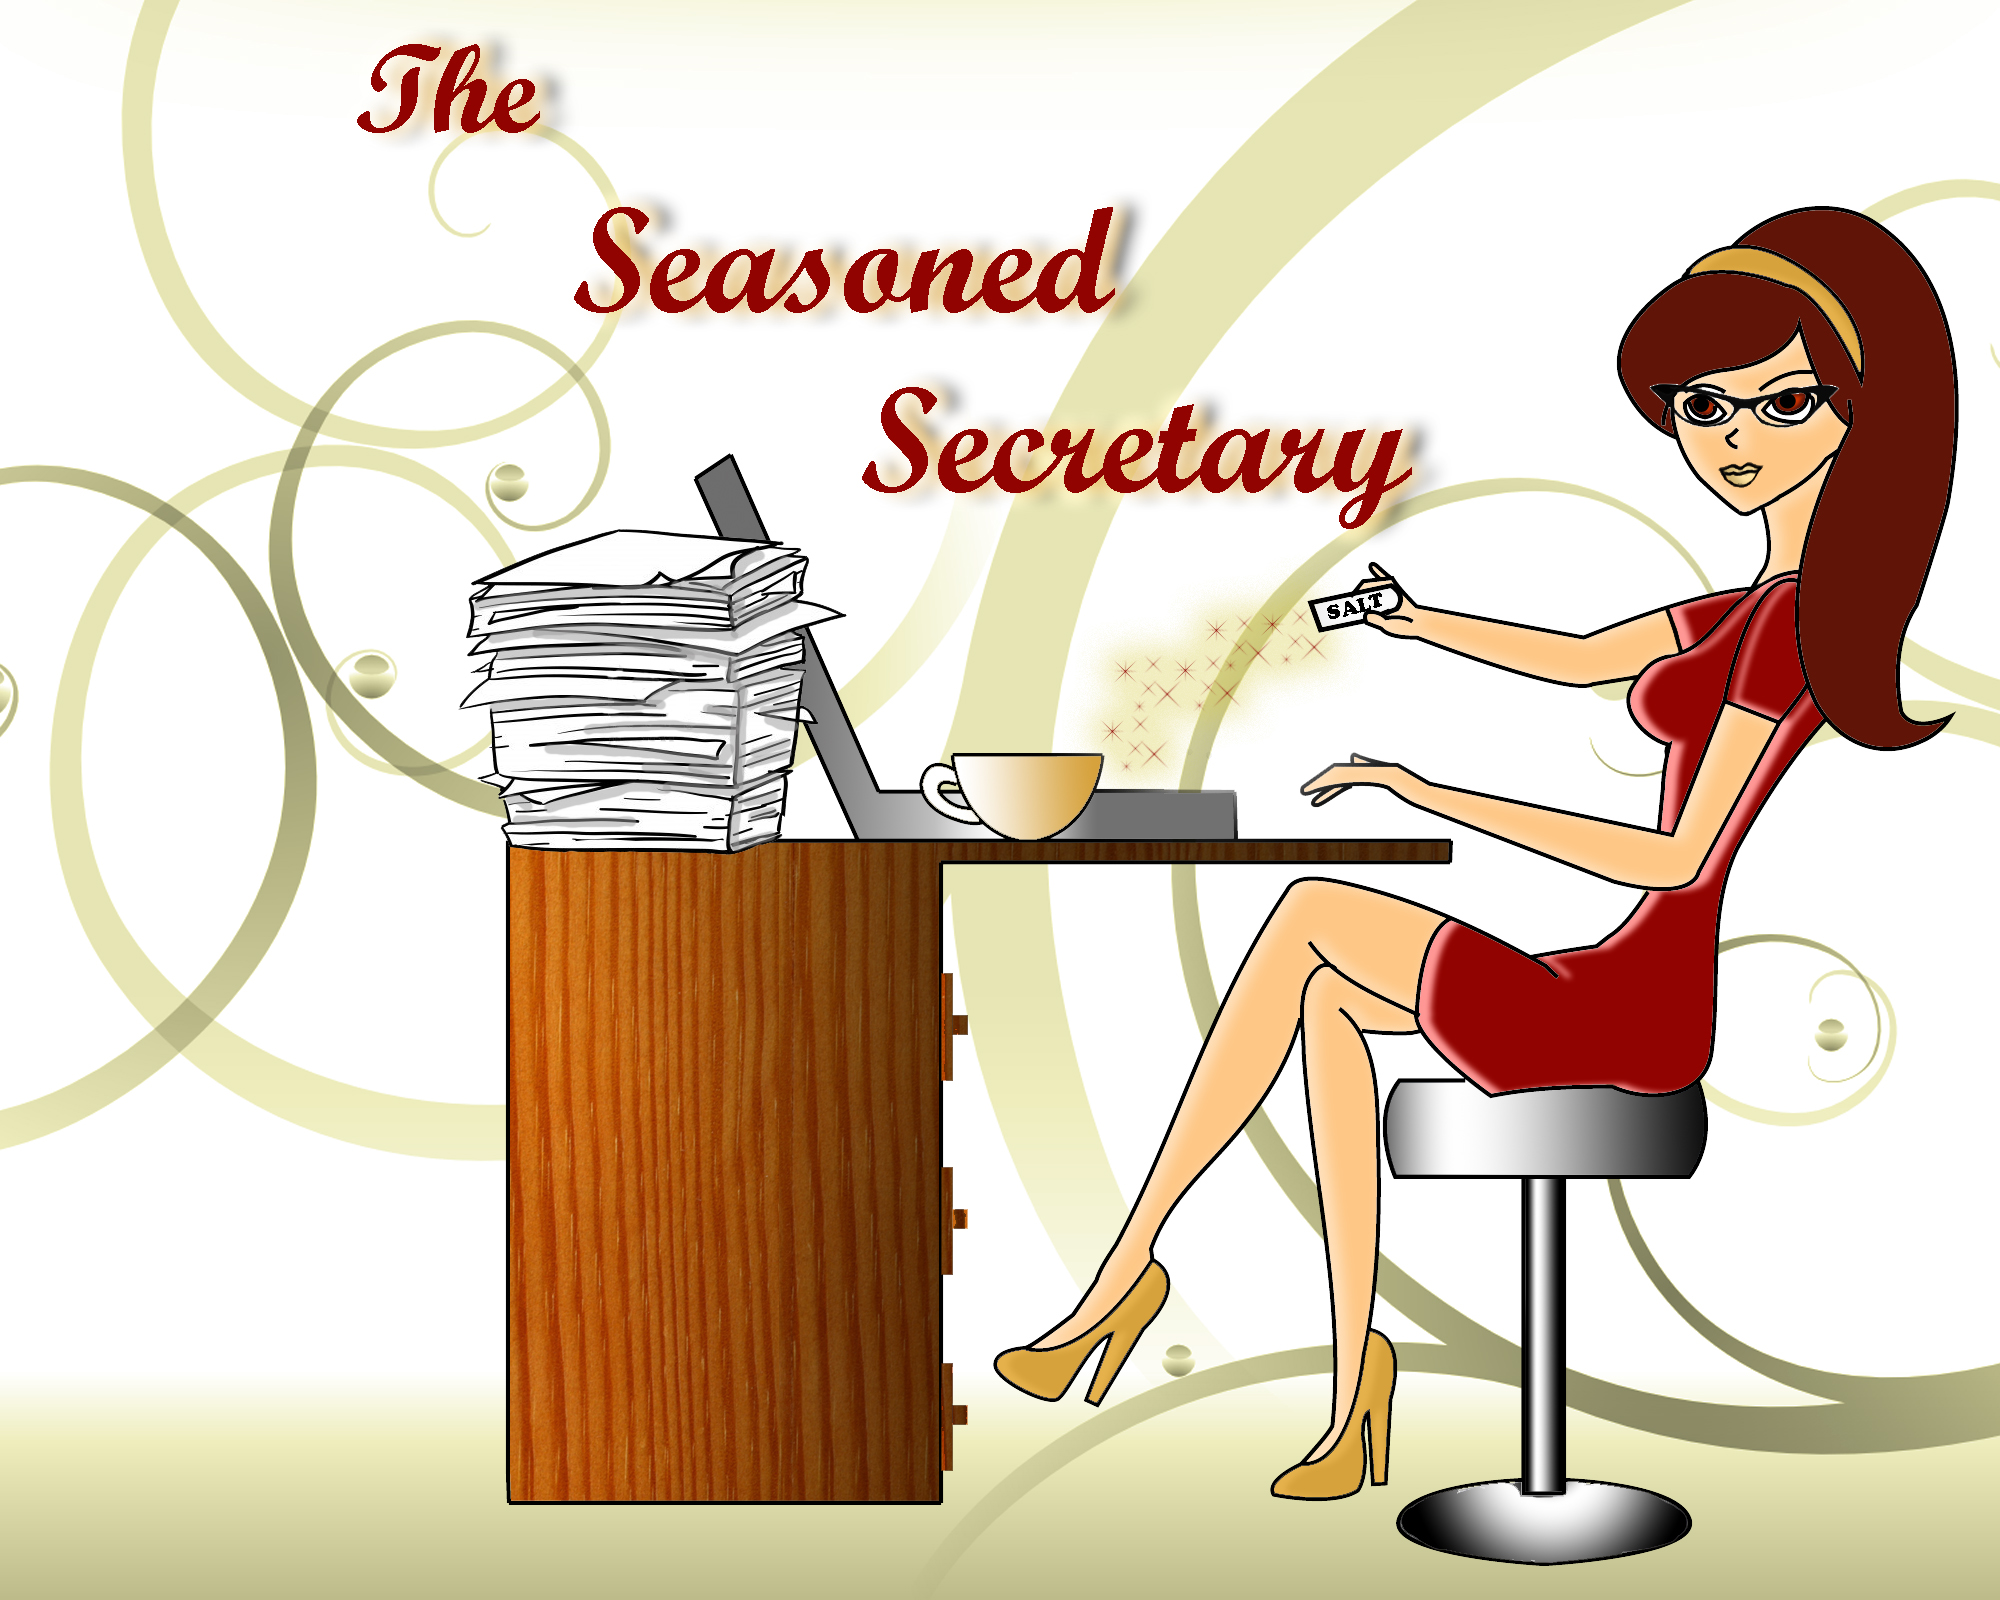 The Seasoned Secretary